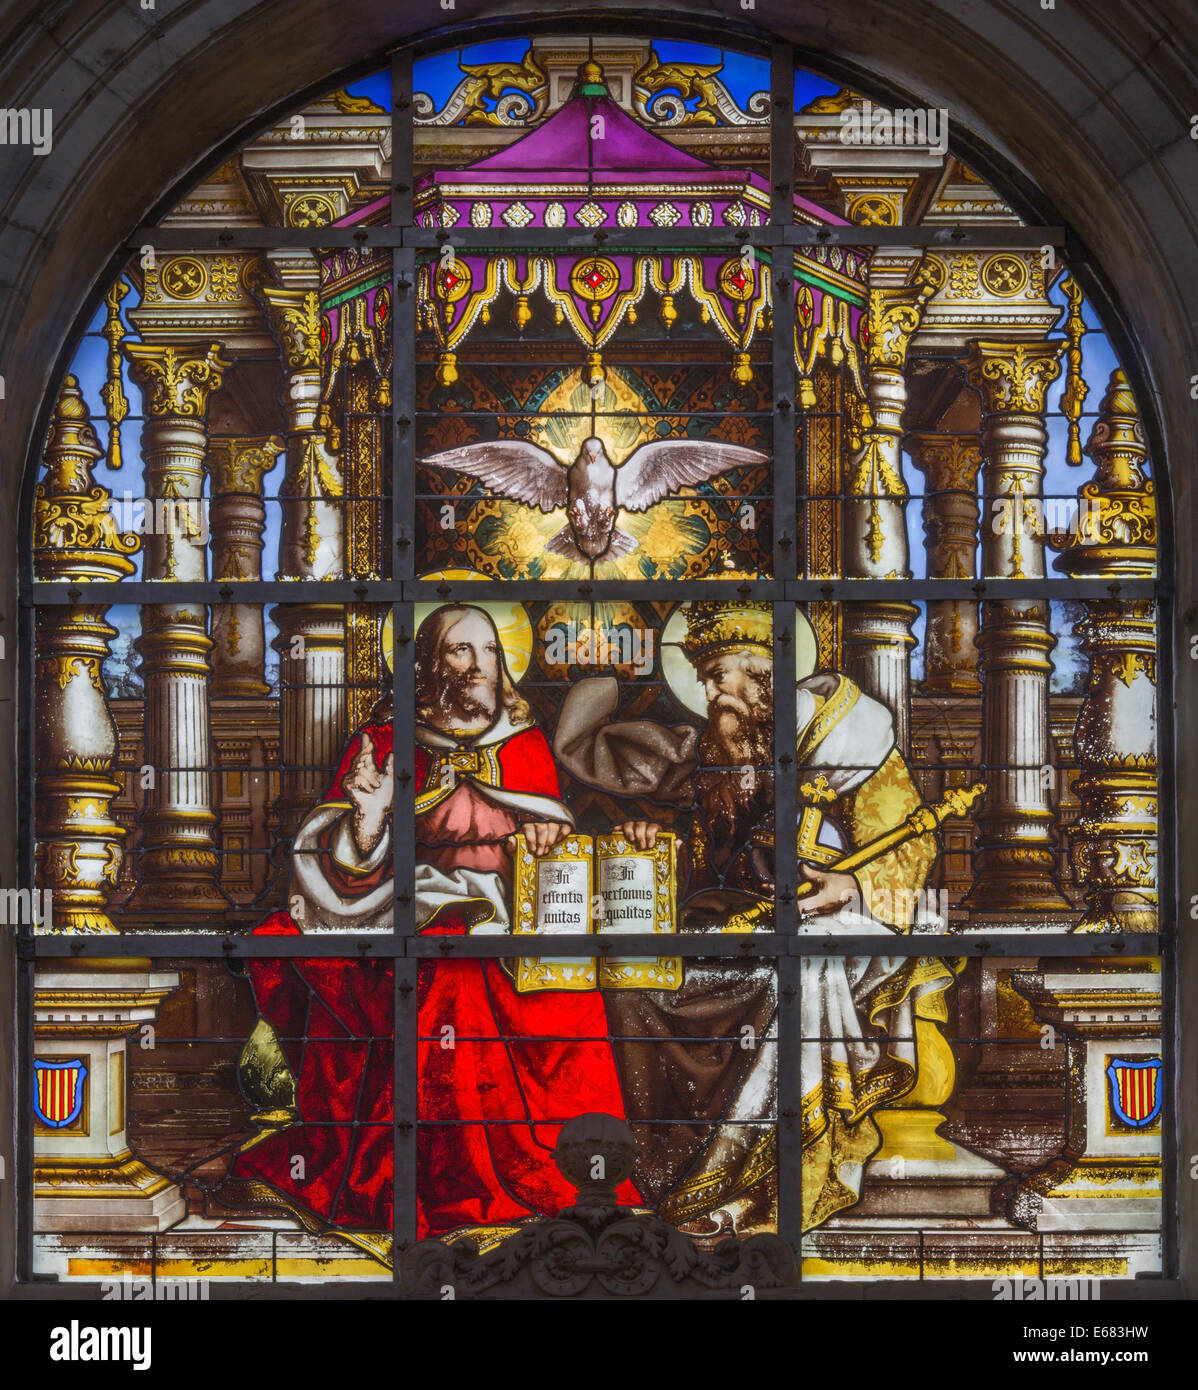 BRUSSELS, BELGIUM - JUNE 16, 2014: The Holy Trinity on windwopane from 19. cent. in the cathedral of st. Michael - Stock Image